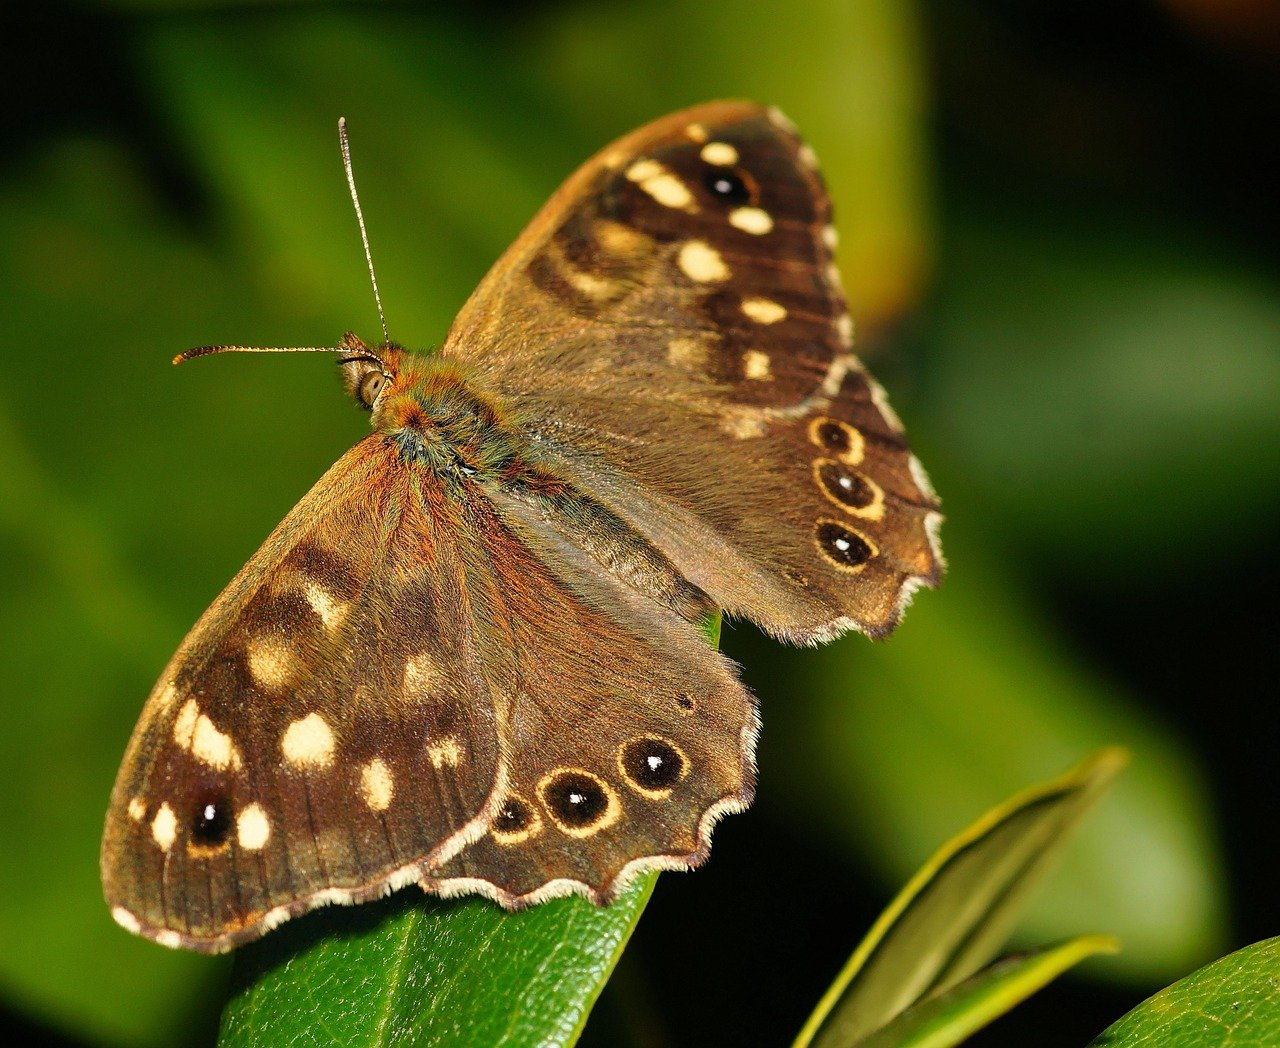 From the short stories series: The Butterfly Story